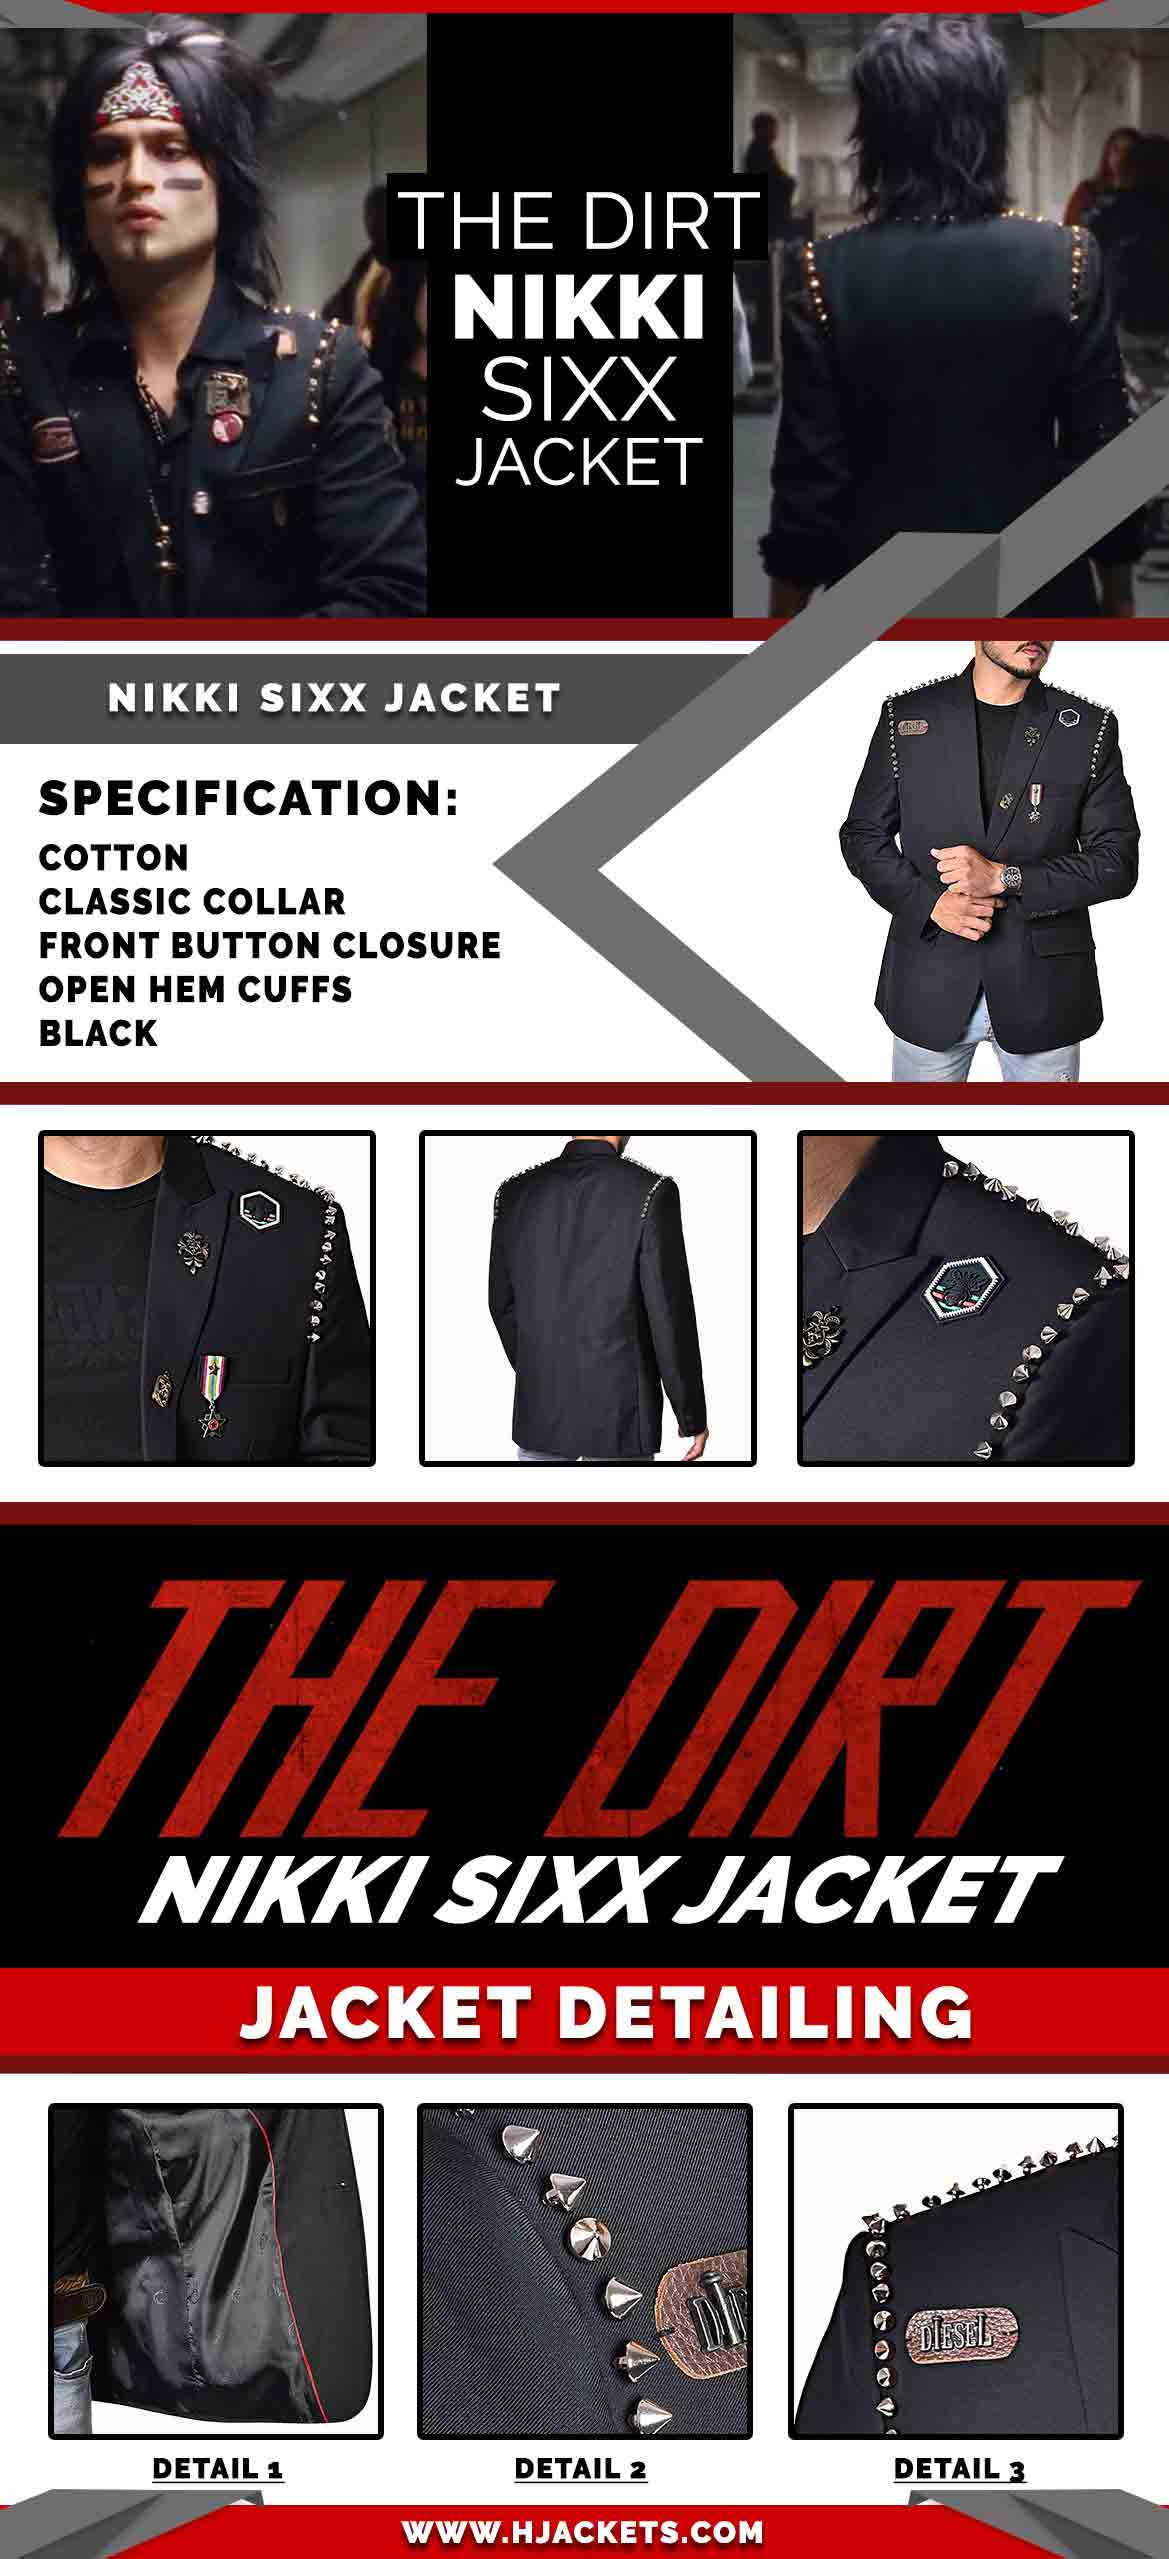 the dirt nikki sixx hjacket infographic